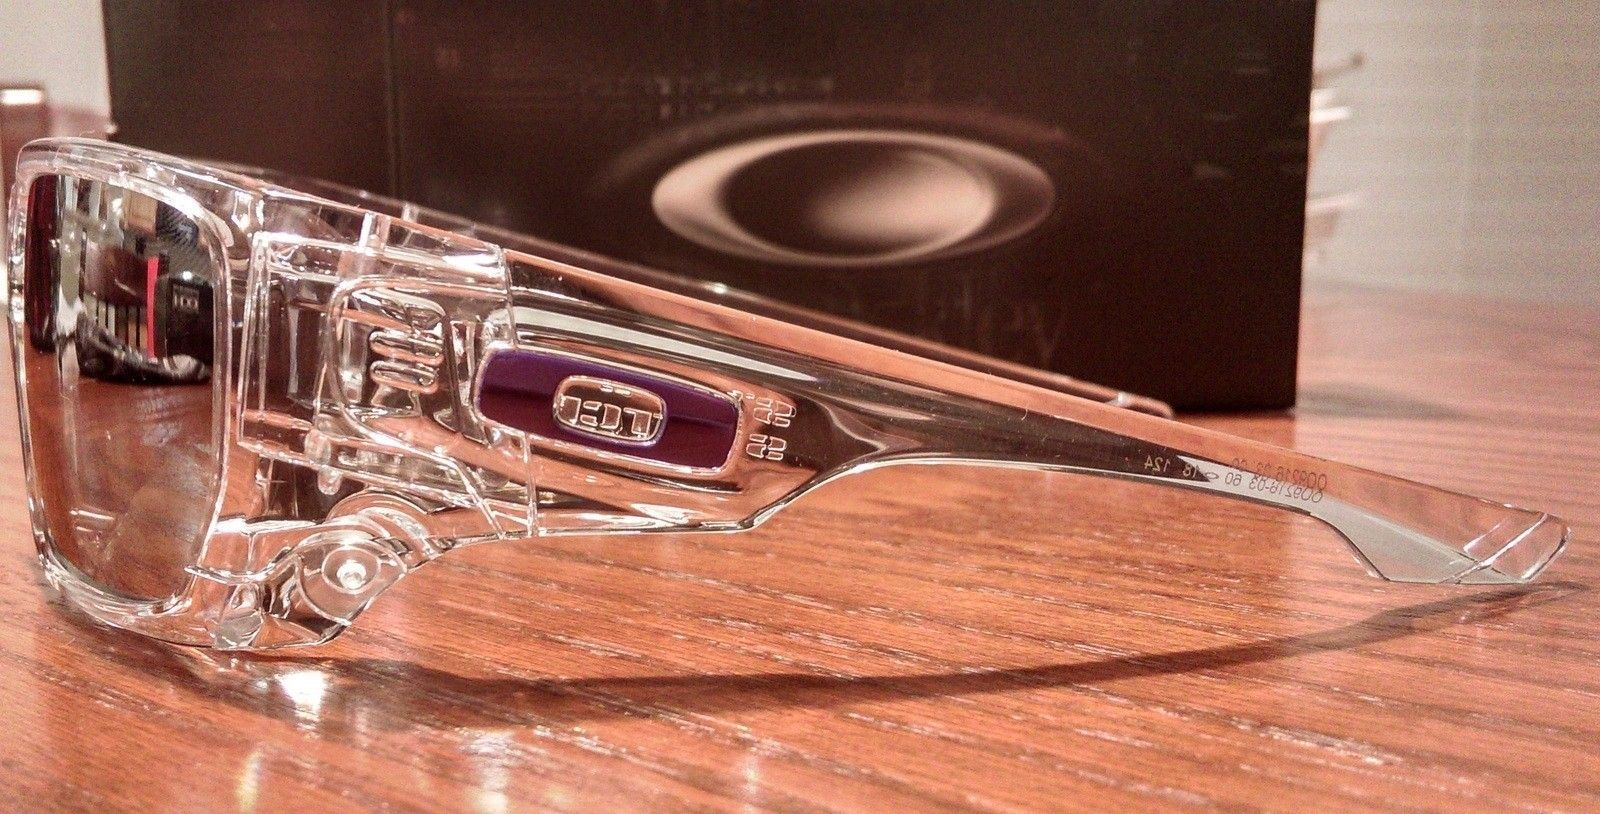 Polished Clear Asian Fit Style Switch - Chrome Irid & Grey lenses - qezOZ5H.jpg